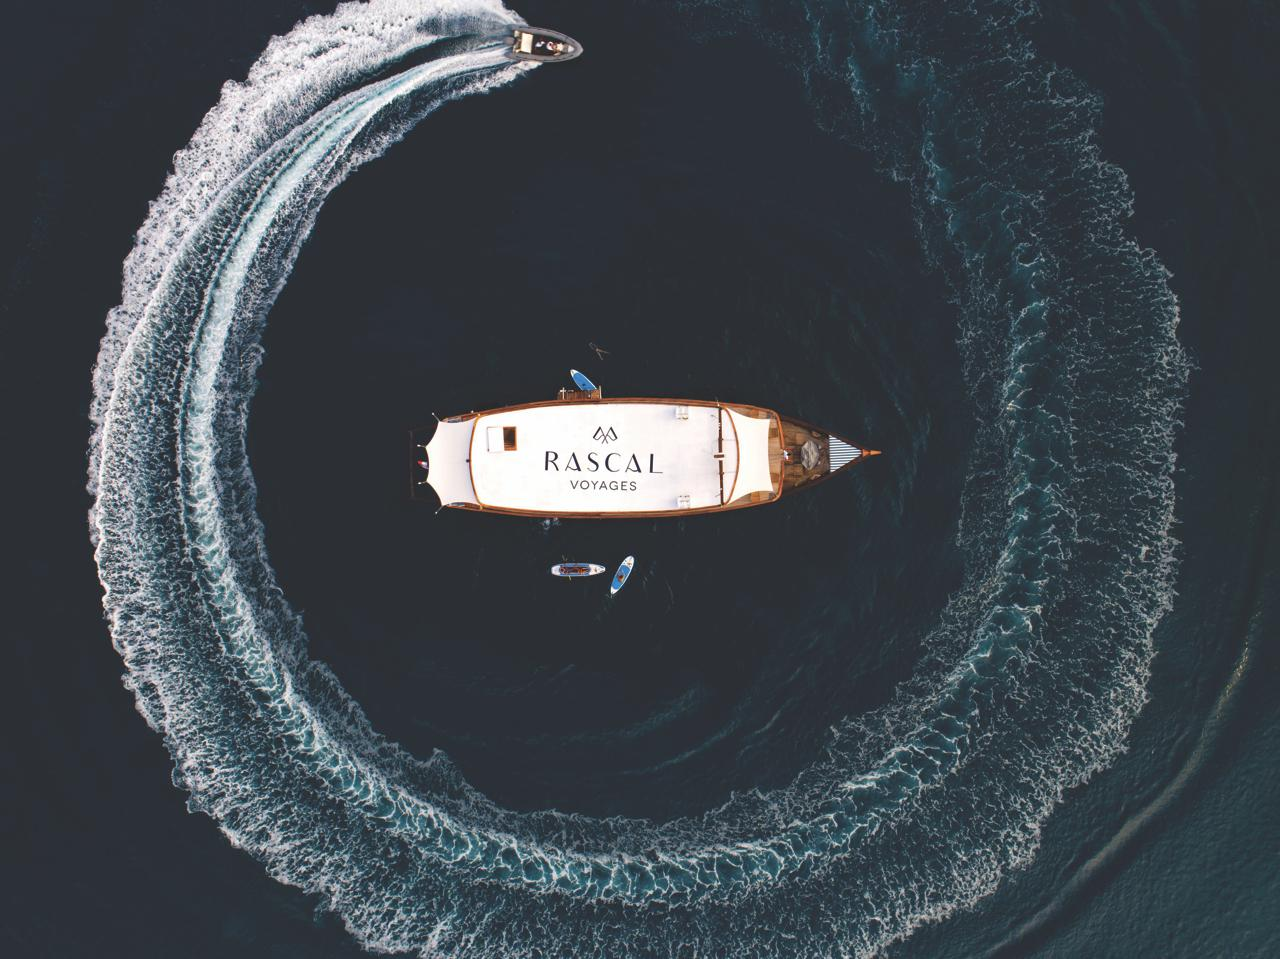 Rascal Voyages